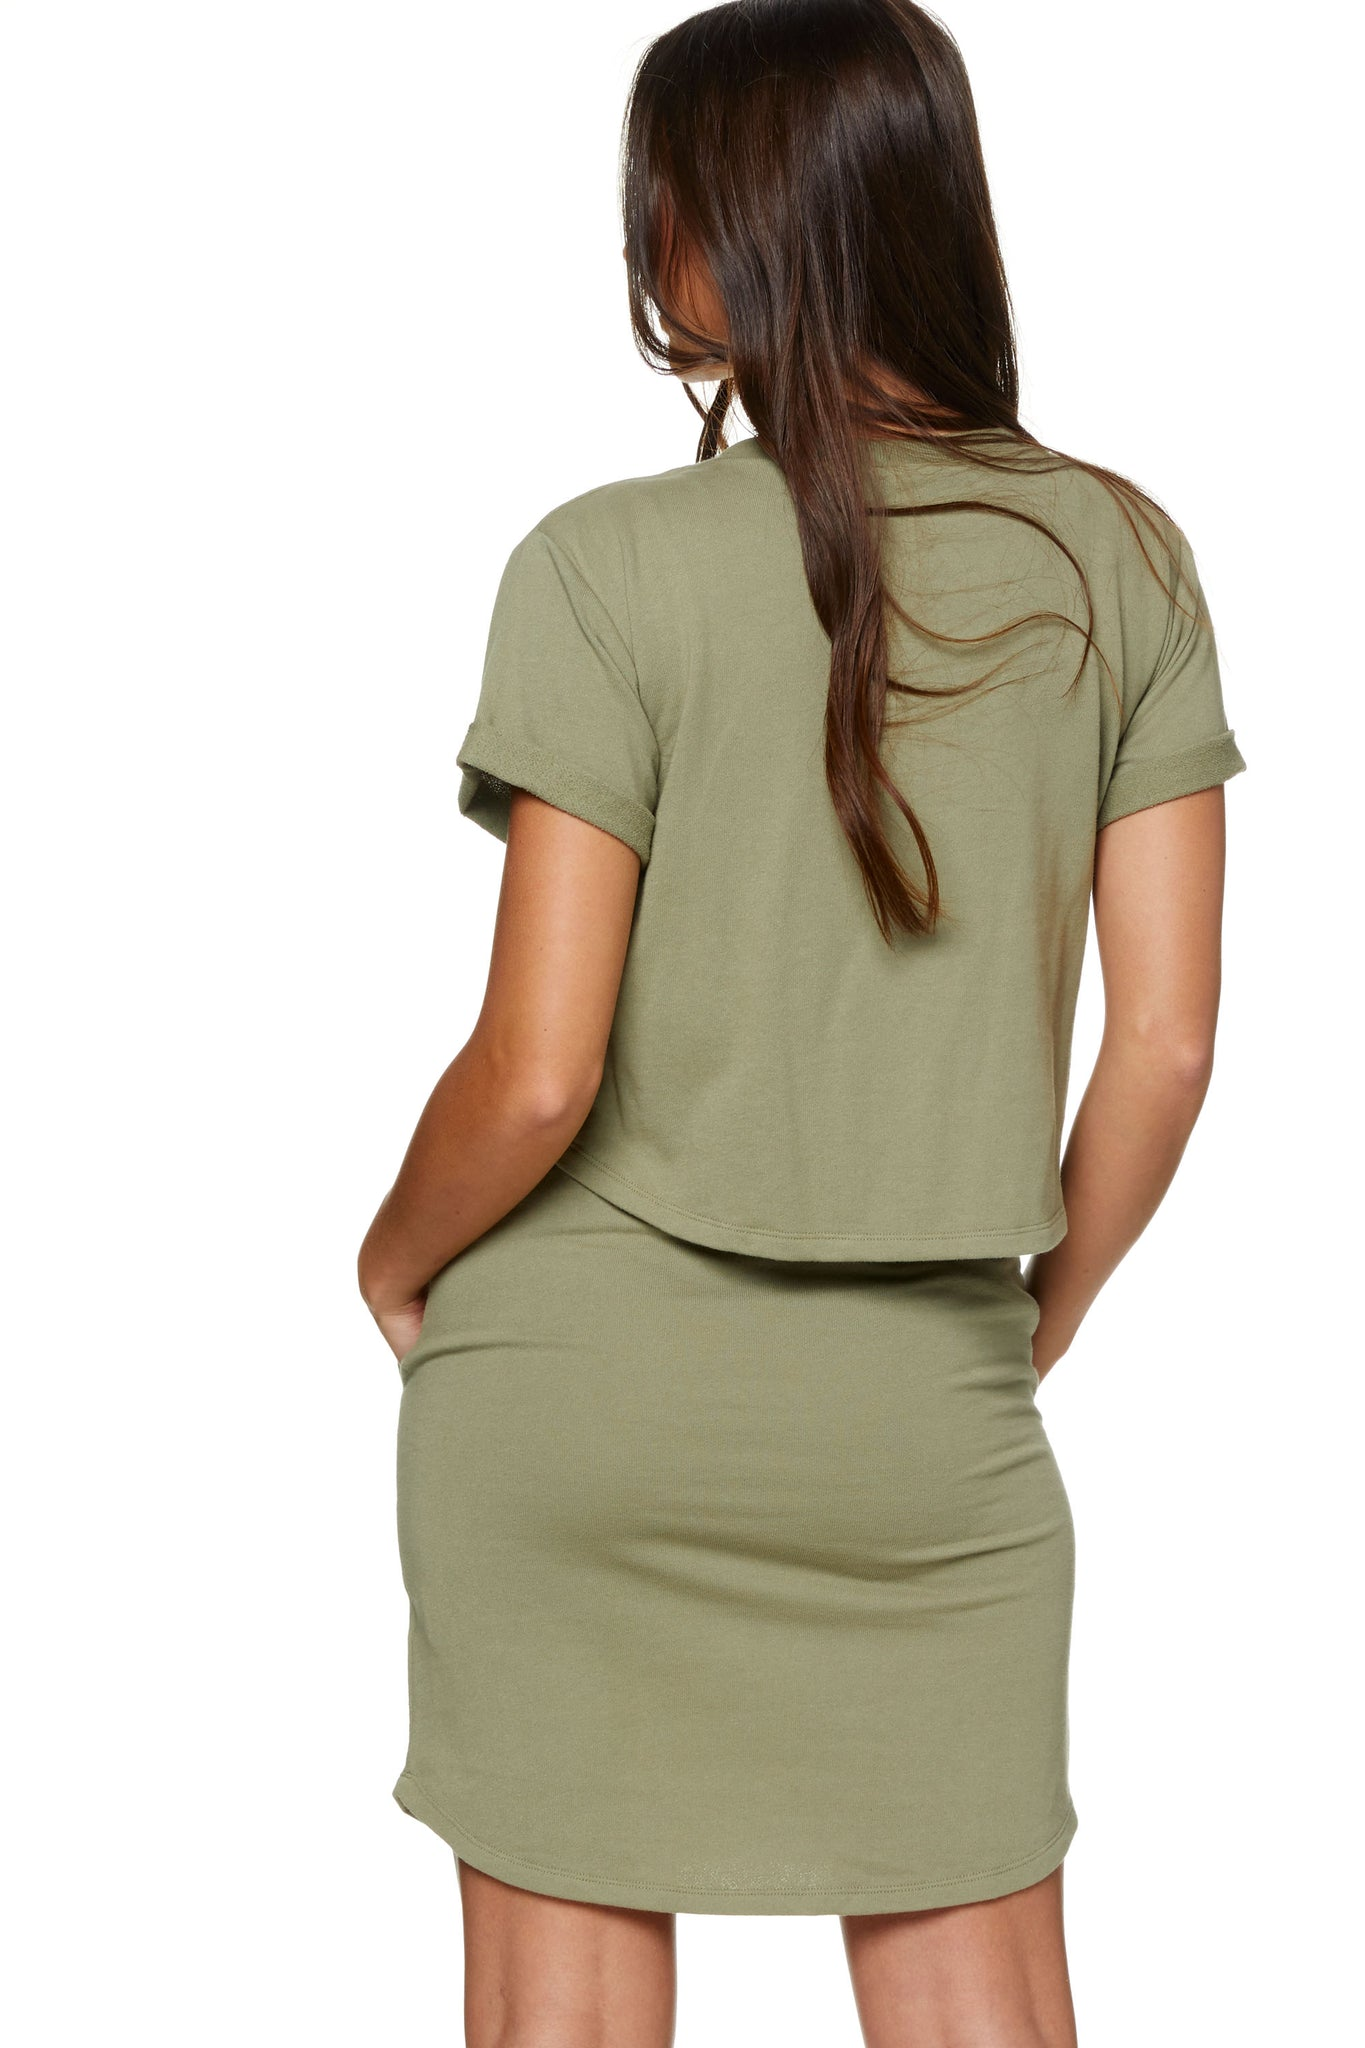 Maternity and Nursing Dress Khaki Image 3